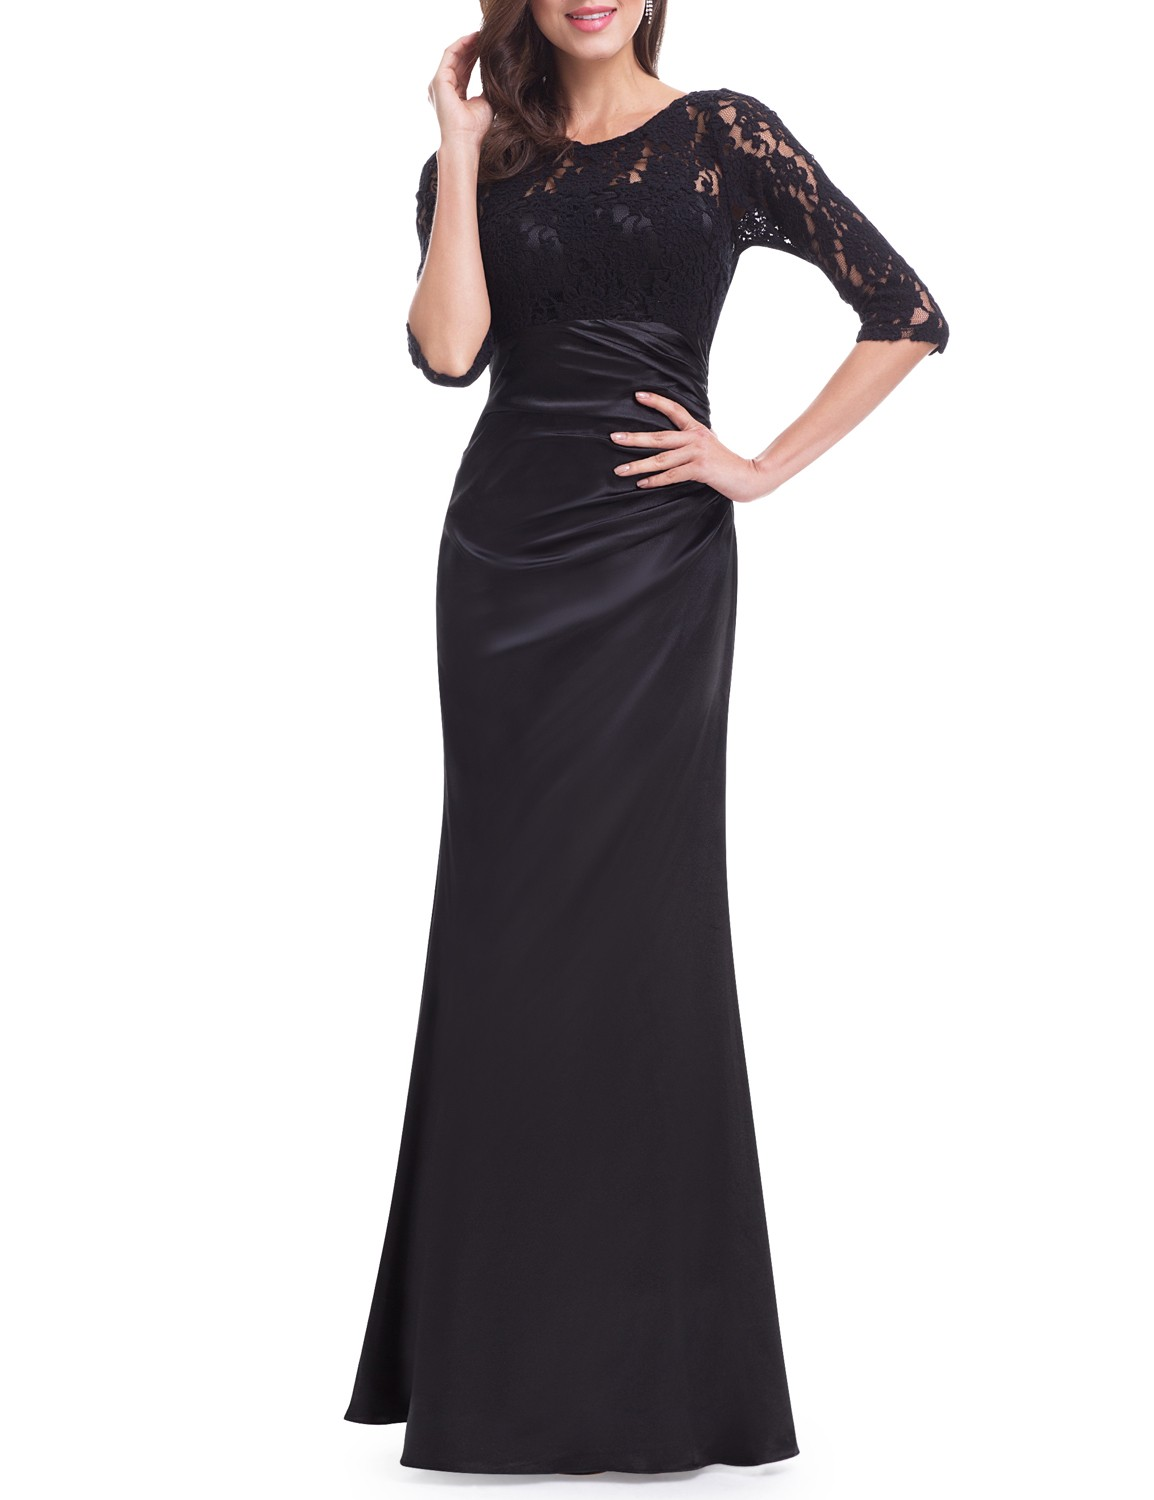 everpretty uk lace long sleeves evening ball gown wedding